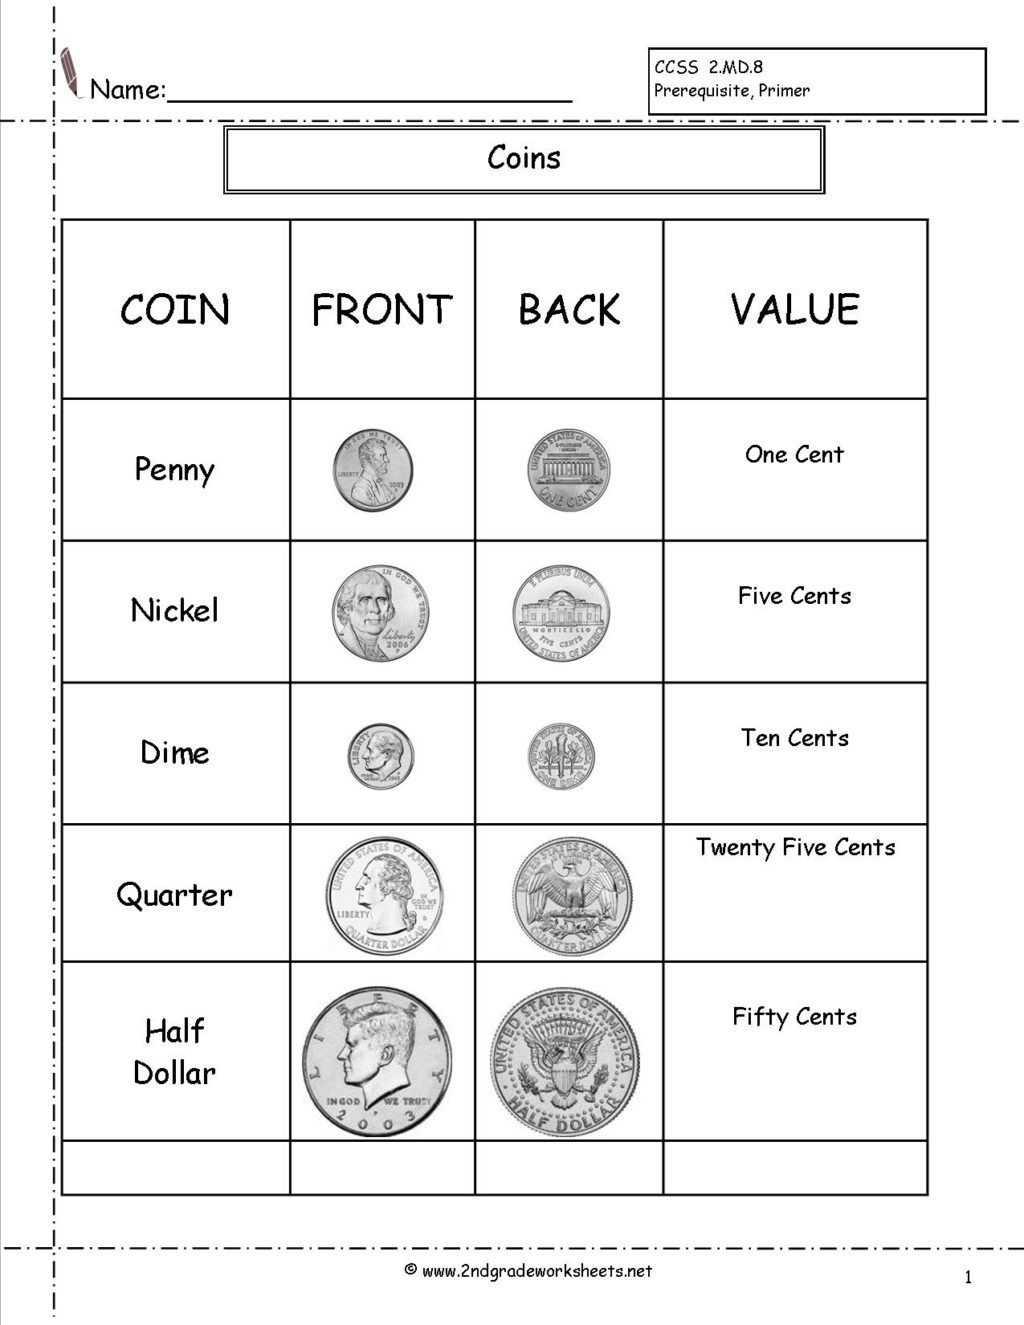 Counting Coins Worksheets 2nd Grade Worksheet Counting Coins and Money Worksheets Printouts